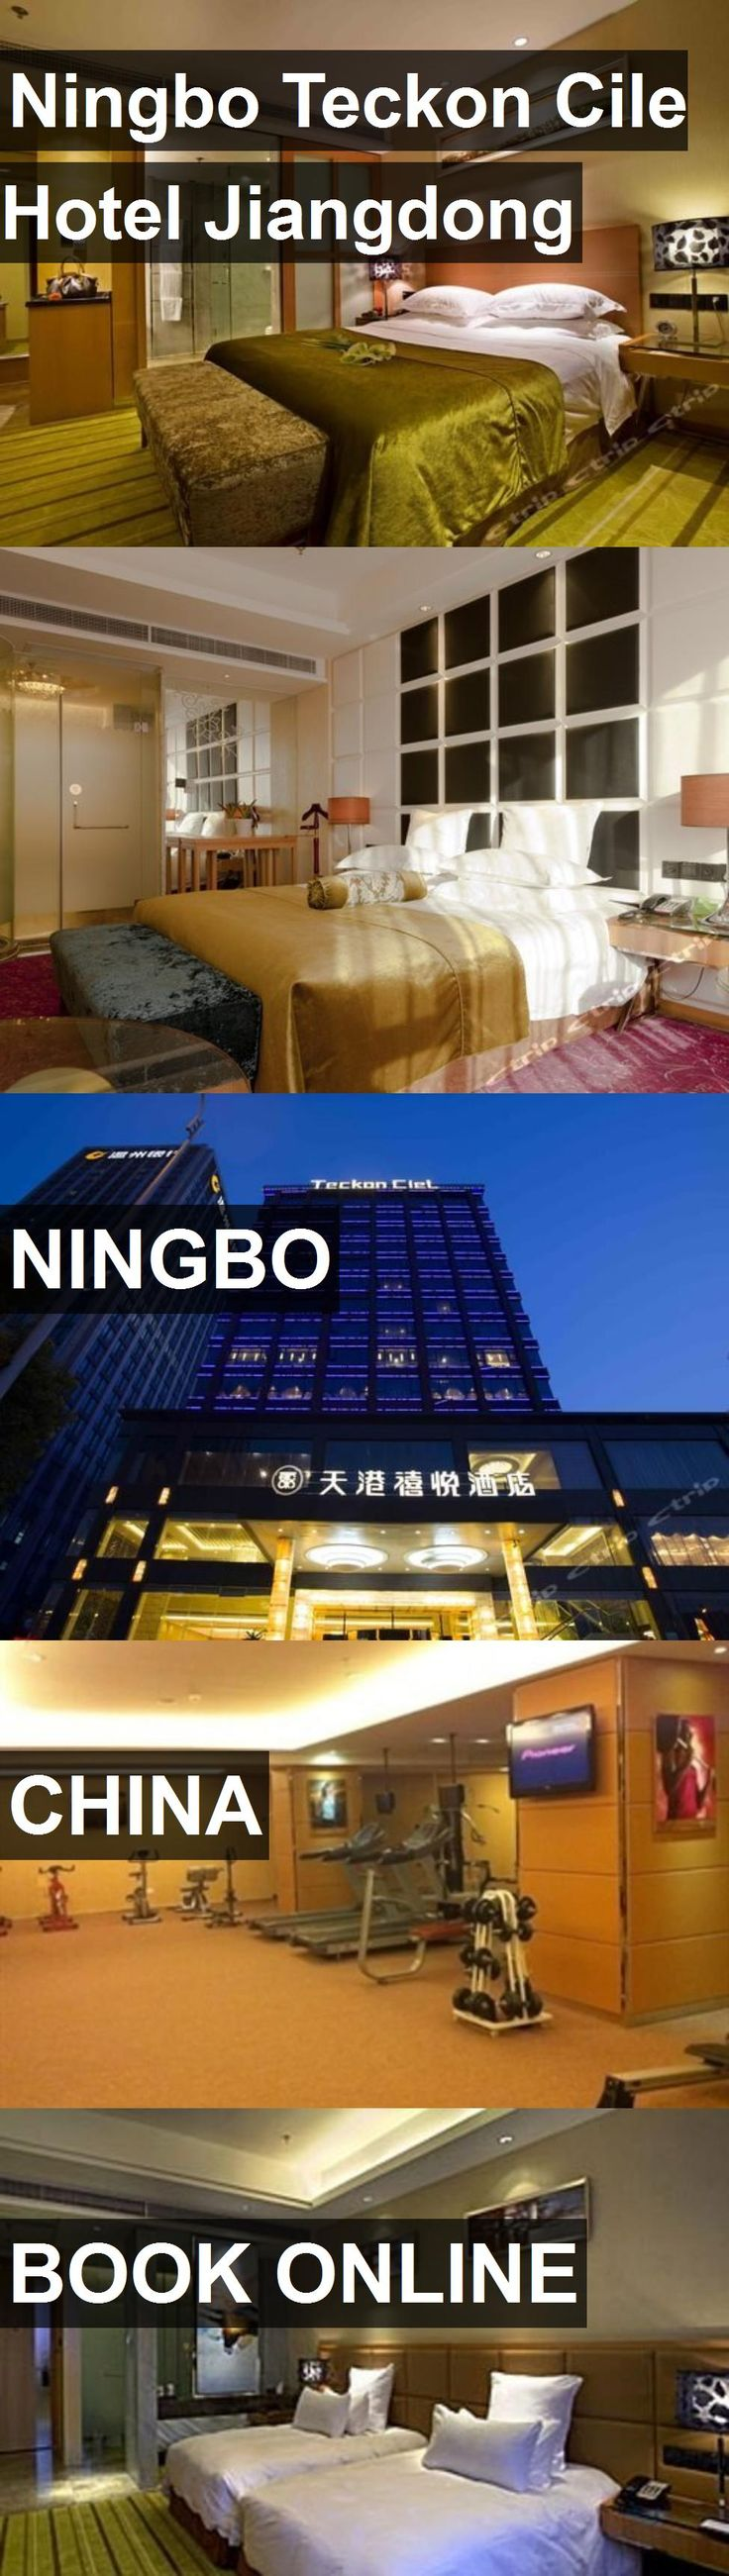 Ningbo Teckon Cile Hotel Jiangdong in Ningbo, China. For more information, photos, reviews and best prices please follow the link. #China #Ningbo #travel #vacation #hotel